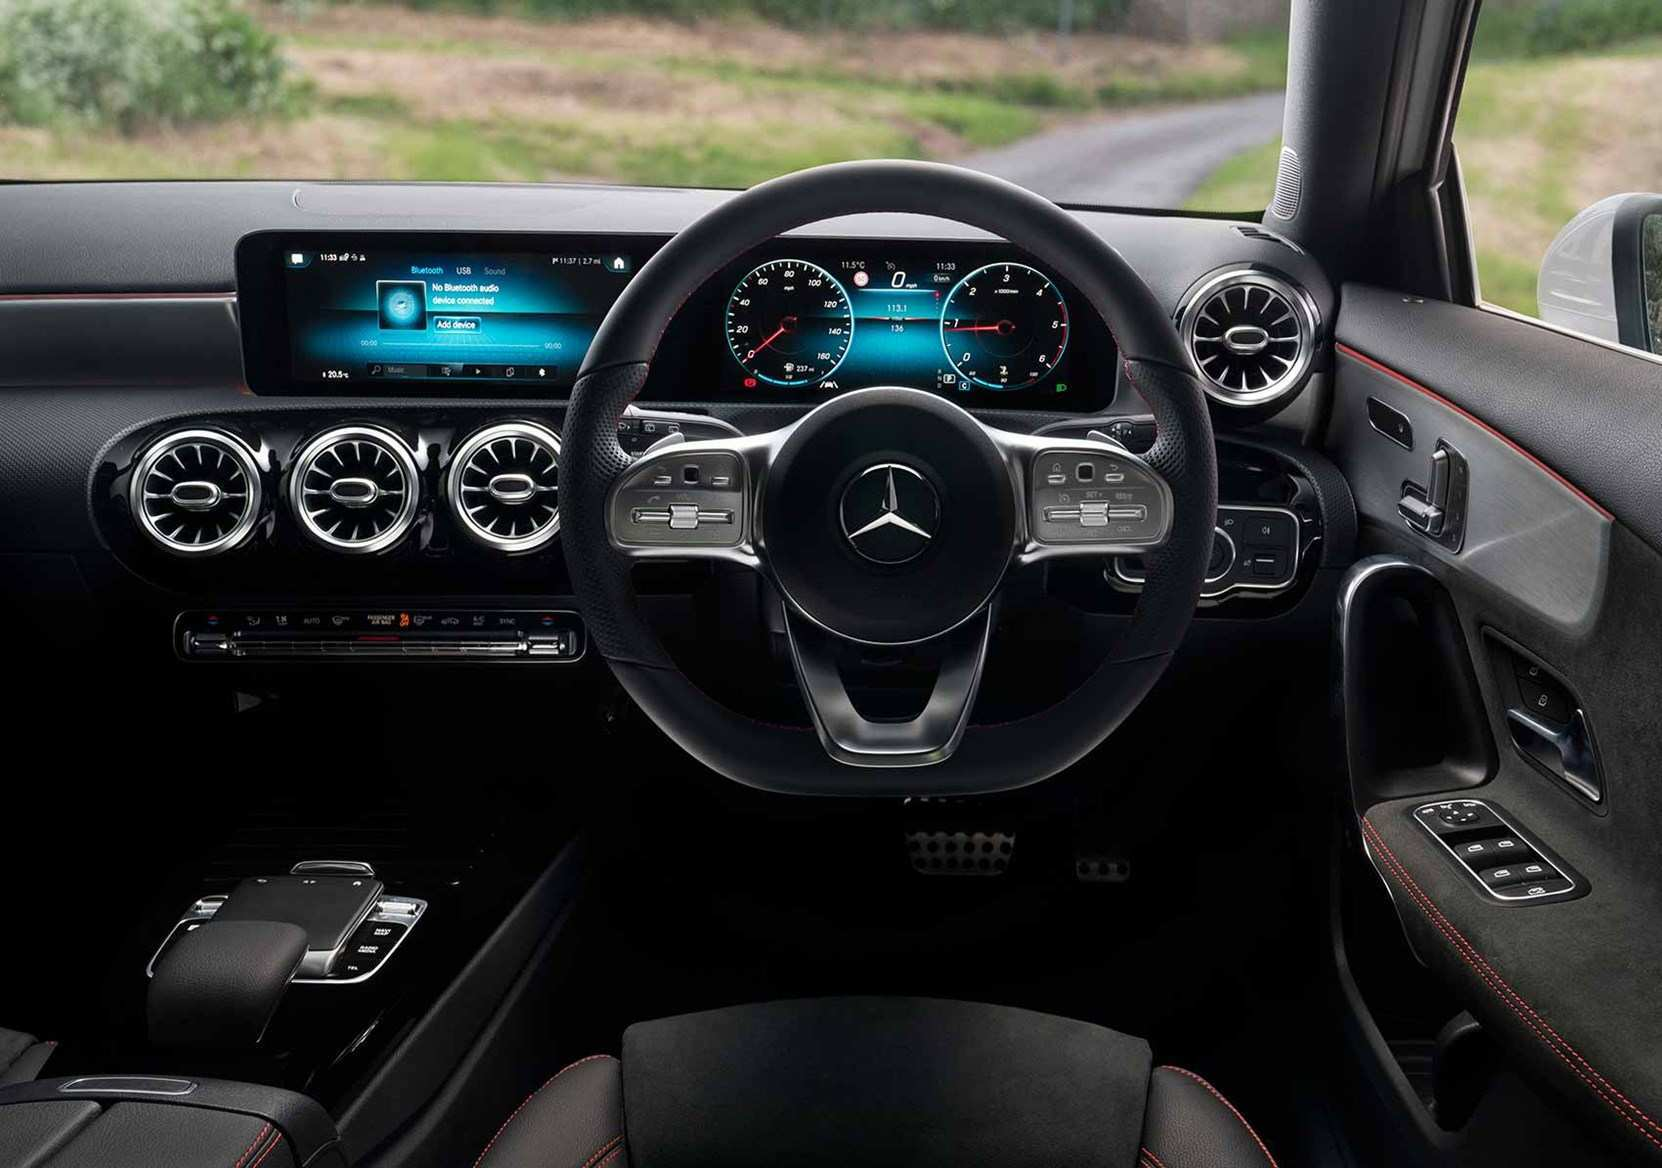 44 Gallery of Mercedes A Class 2019 Interior Exterior and Interior for Mercedes A Class 2019 Interior